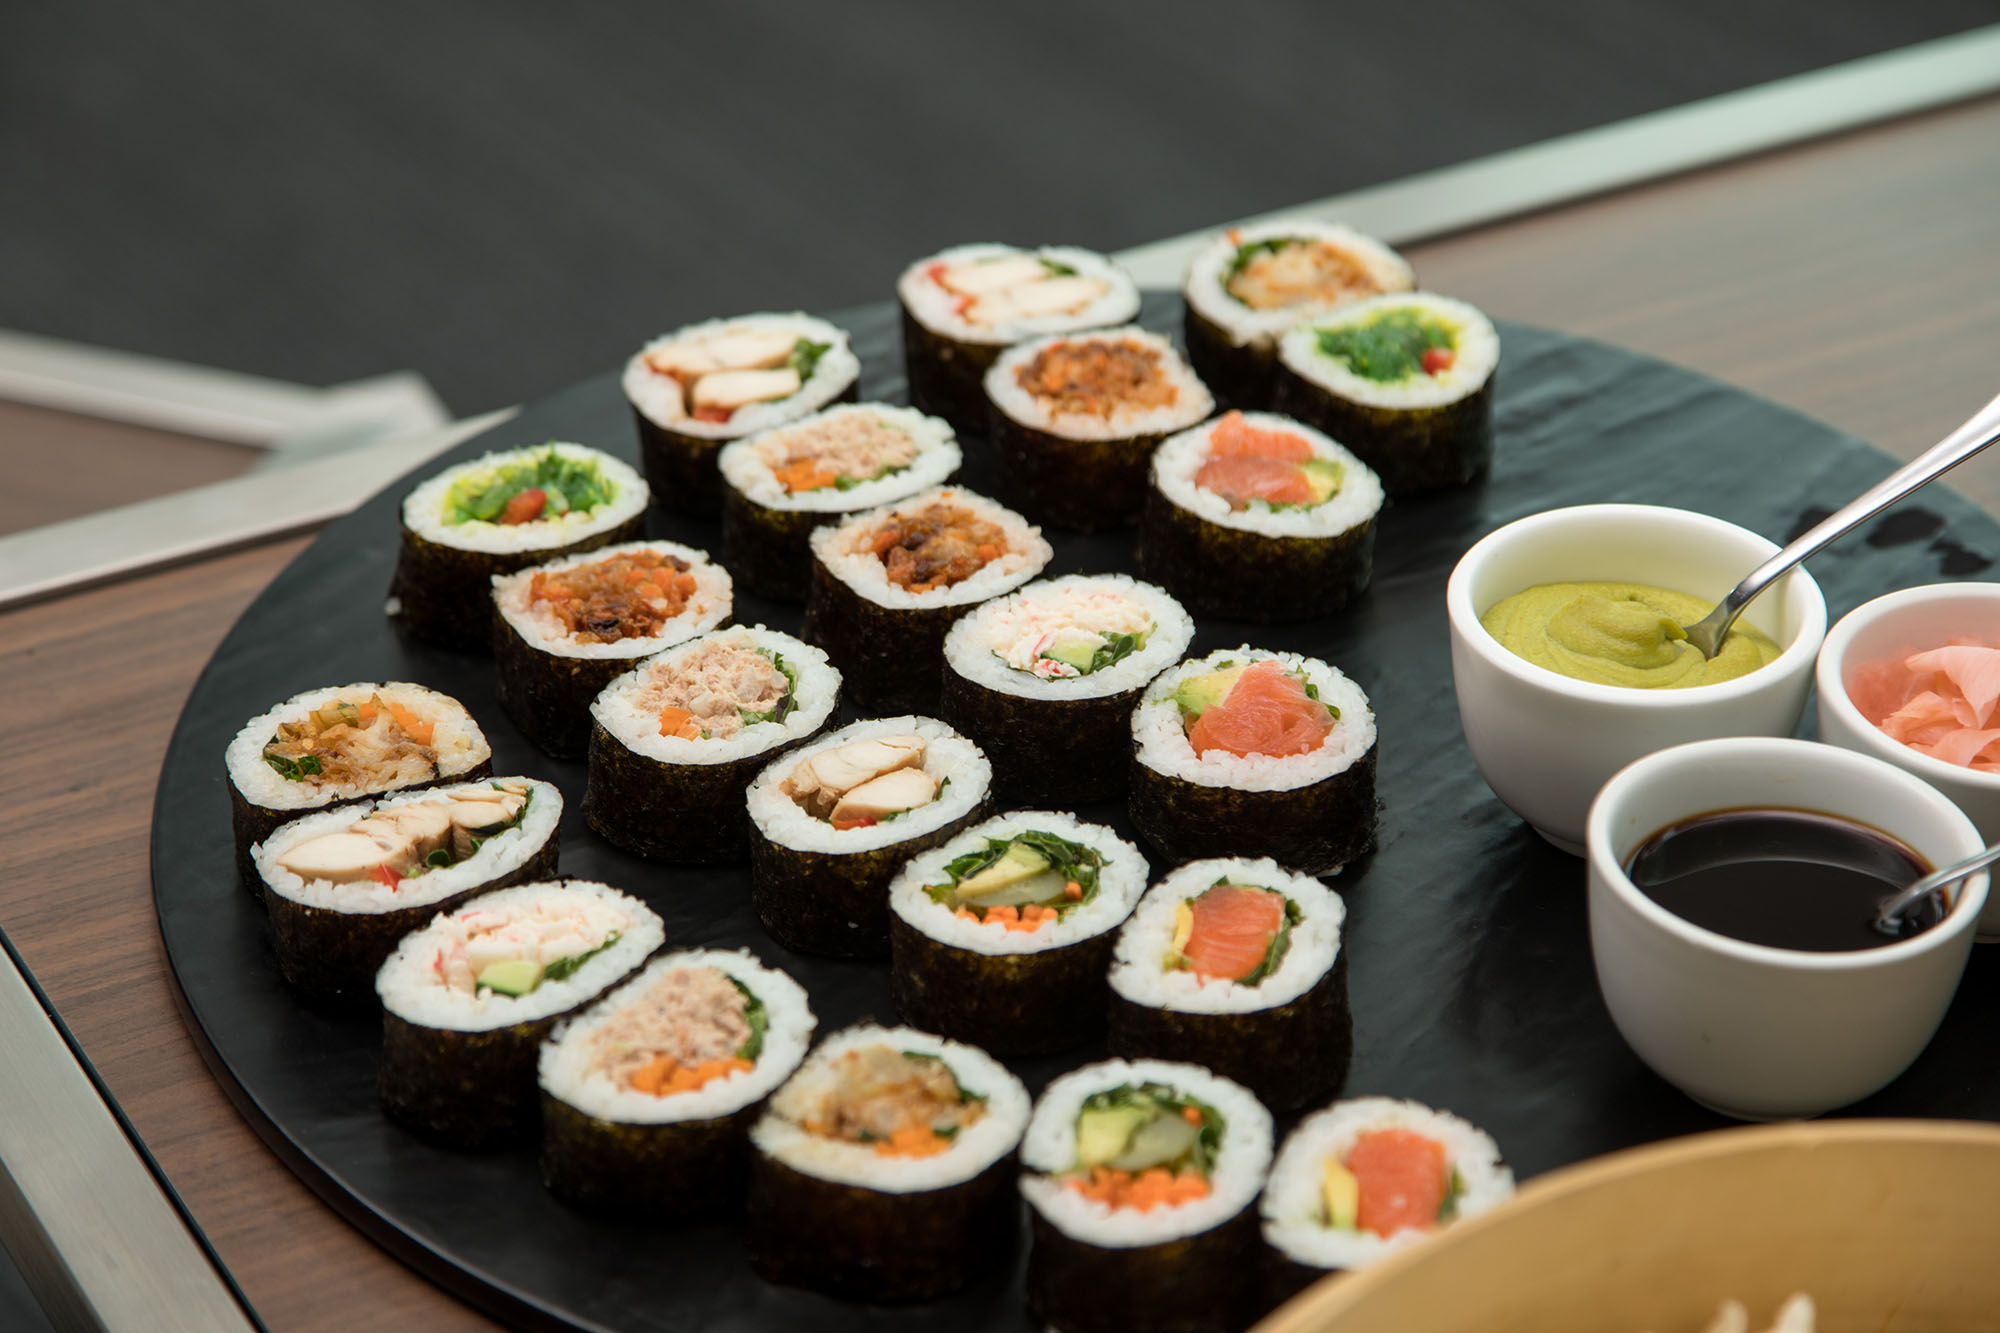 An array of types of sushi rolls on a plate